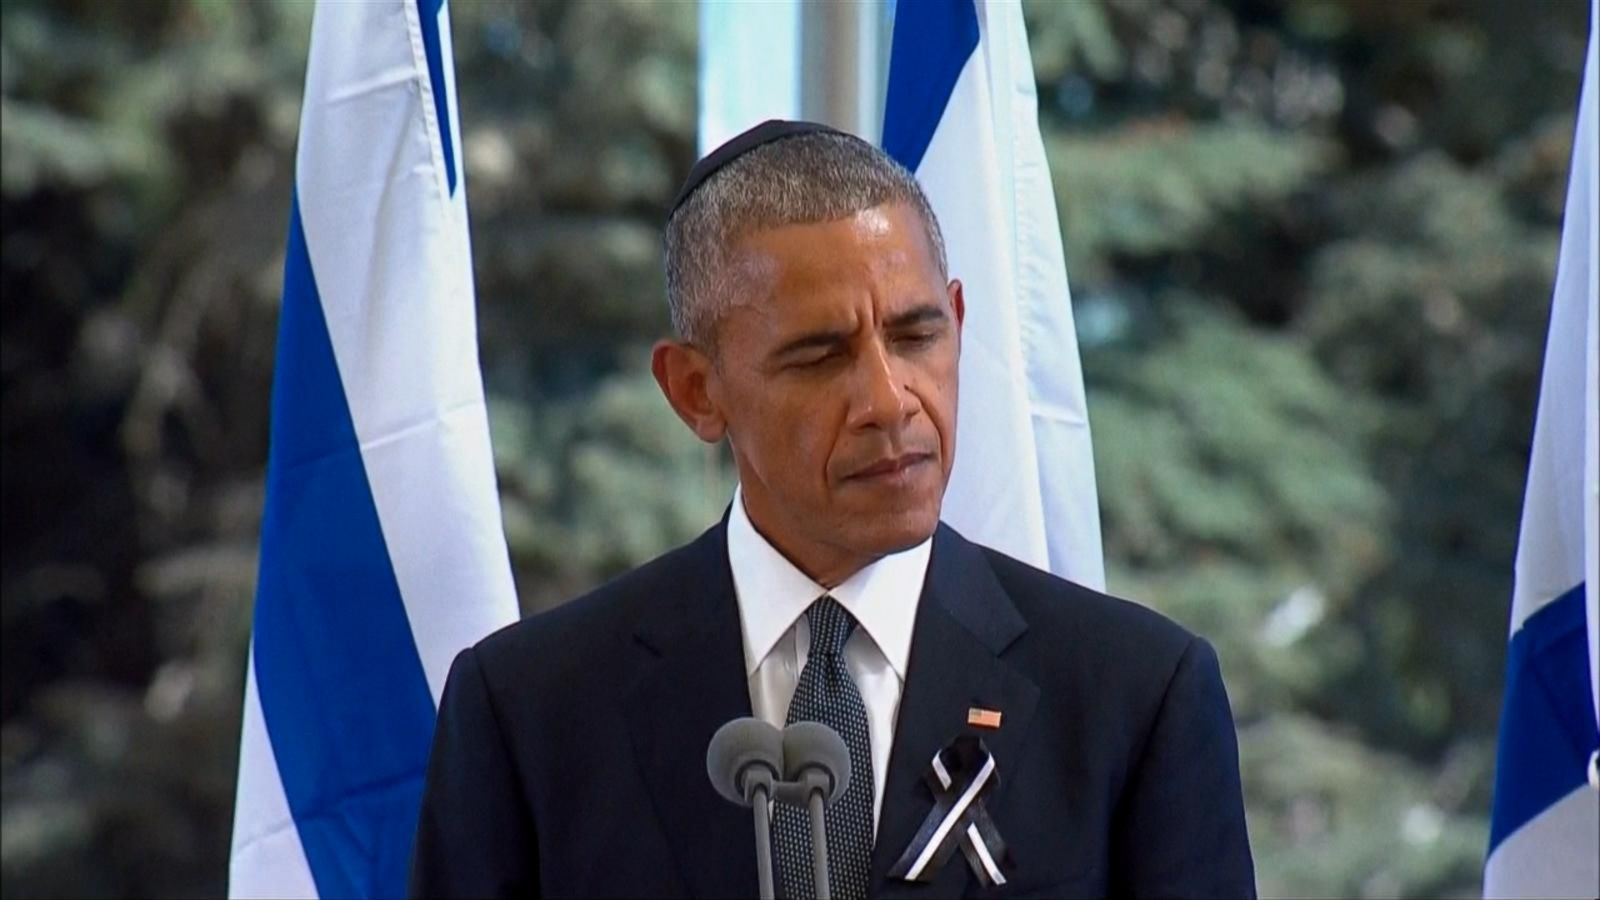 VIDEO: President Obama Attends Funeral of Former Israeli President Shimon Peres